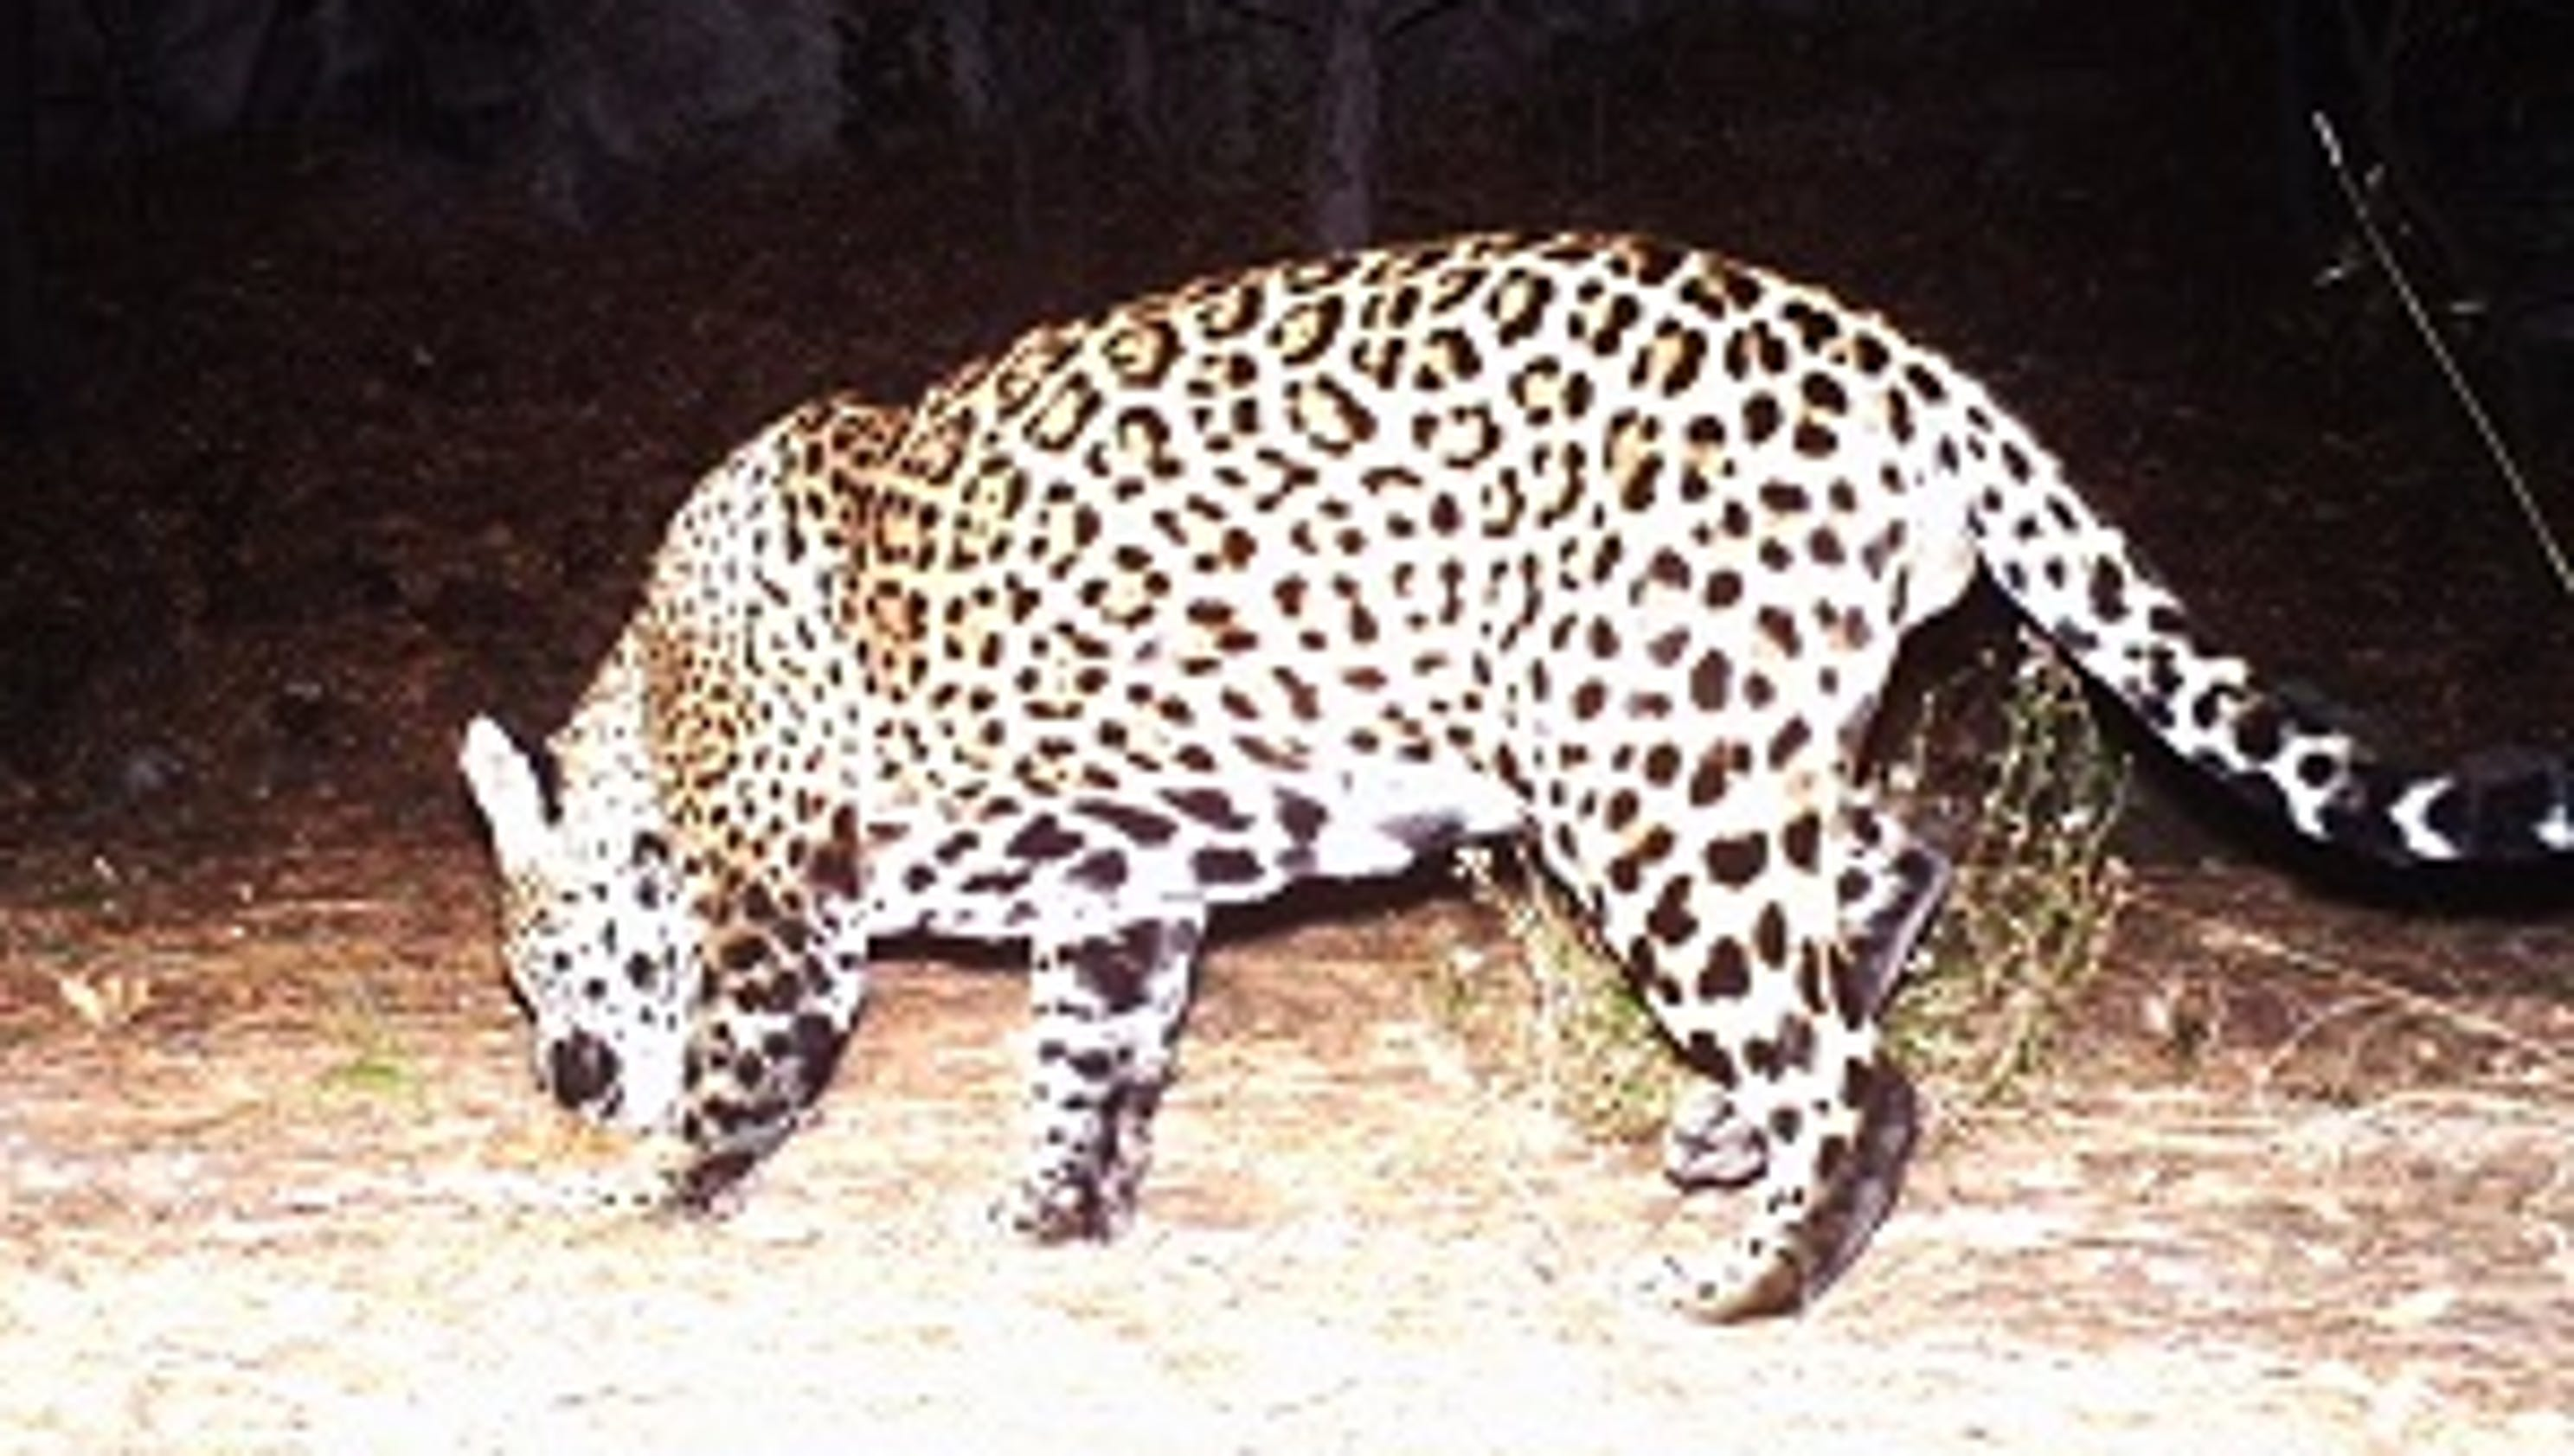 name el photo s for students post new americas tucson make fpwc jefe as who announce america courtesy jaguar only usfws